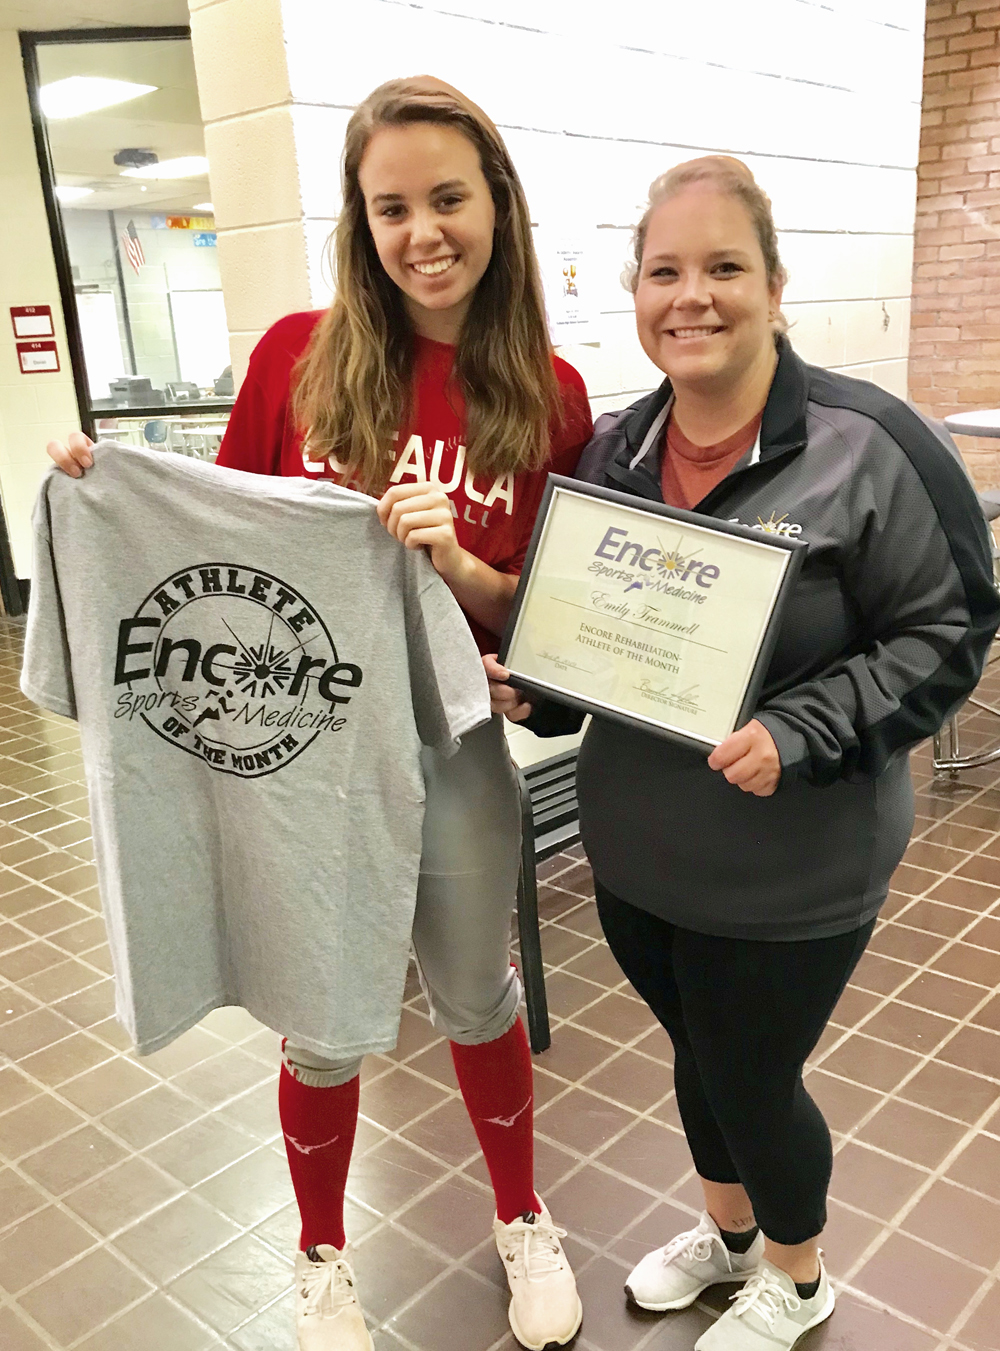 Emily Trammell is Athlete of the Month for Encore Rehabilitation-Eufaula, shown here with Athletic Trainer Jessica McManus #EncoreRehab